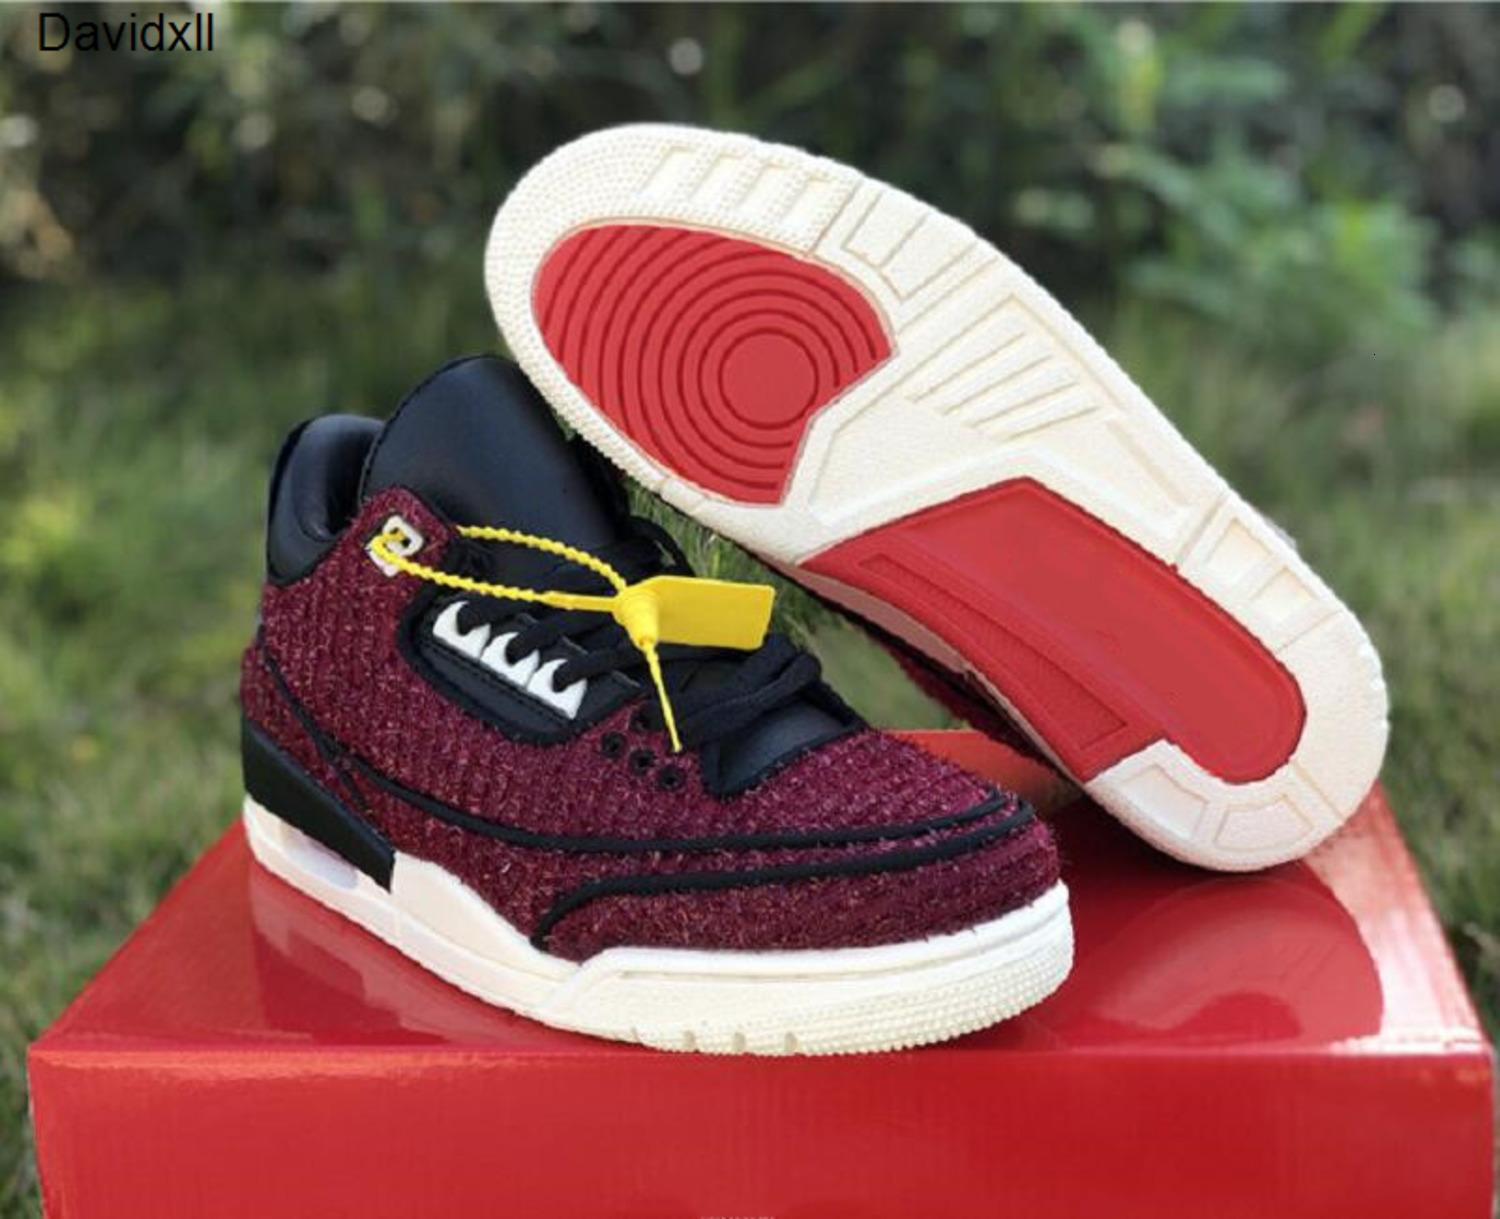 New Designer Knit 3 SE AWOK University Red Sail Black Mens Basketball Shoes Anna Wintour Vouge III Custom Sneakers With Box